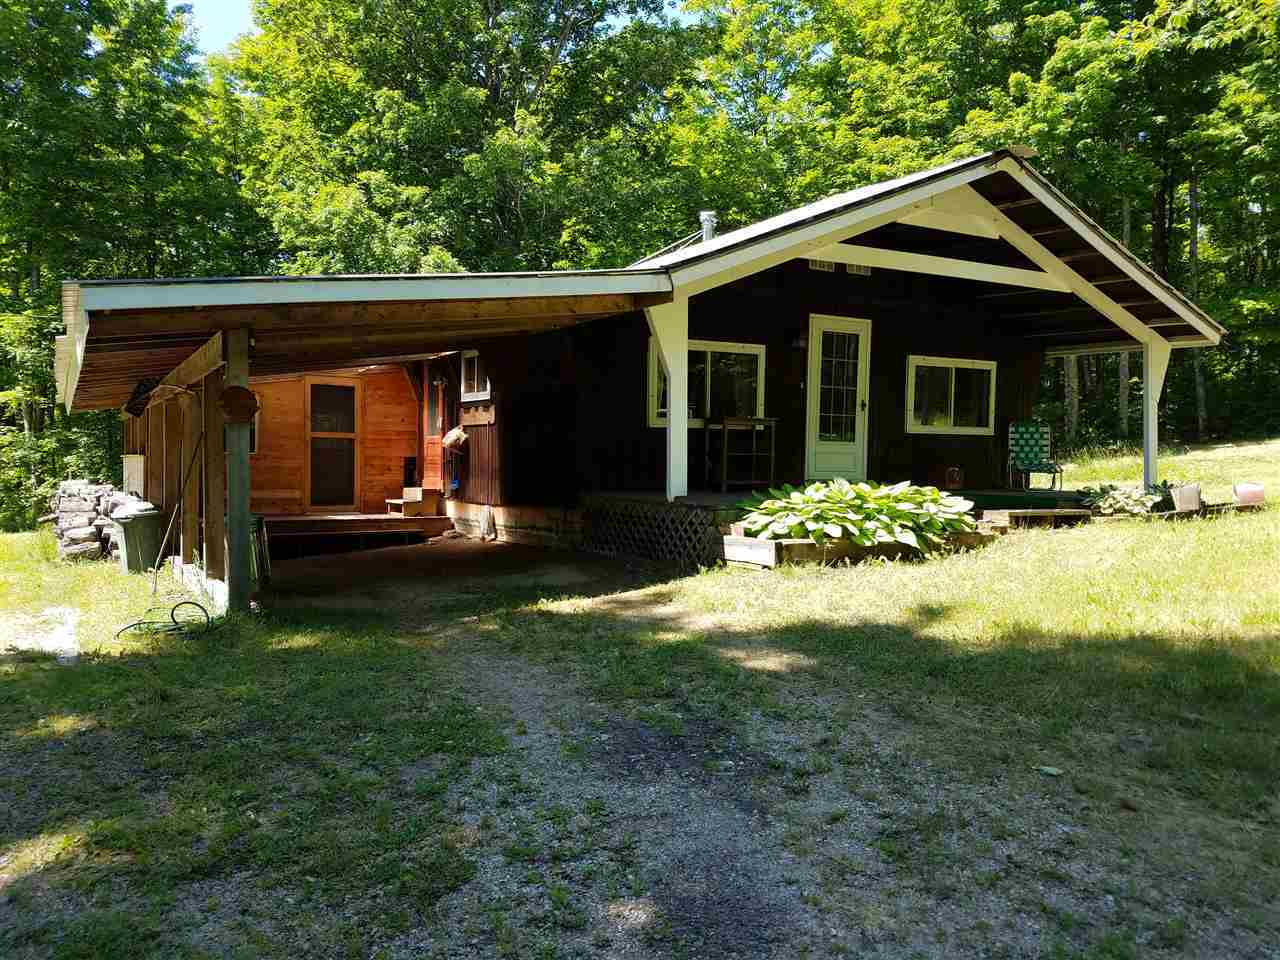 Mls 1103271 n2943 us41 trenary mi 49891 for Upper michigan real estate zillow